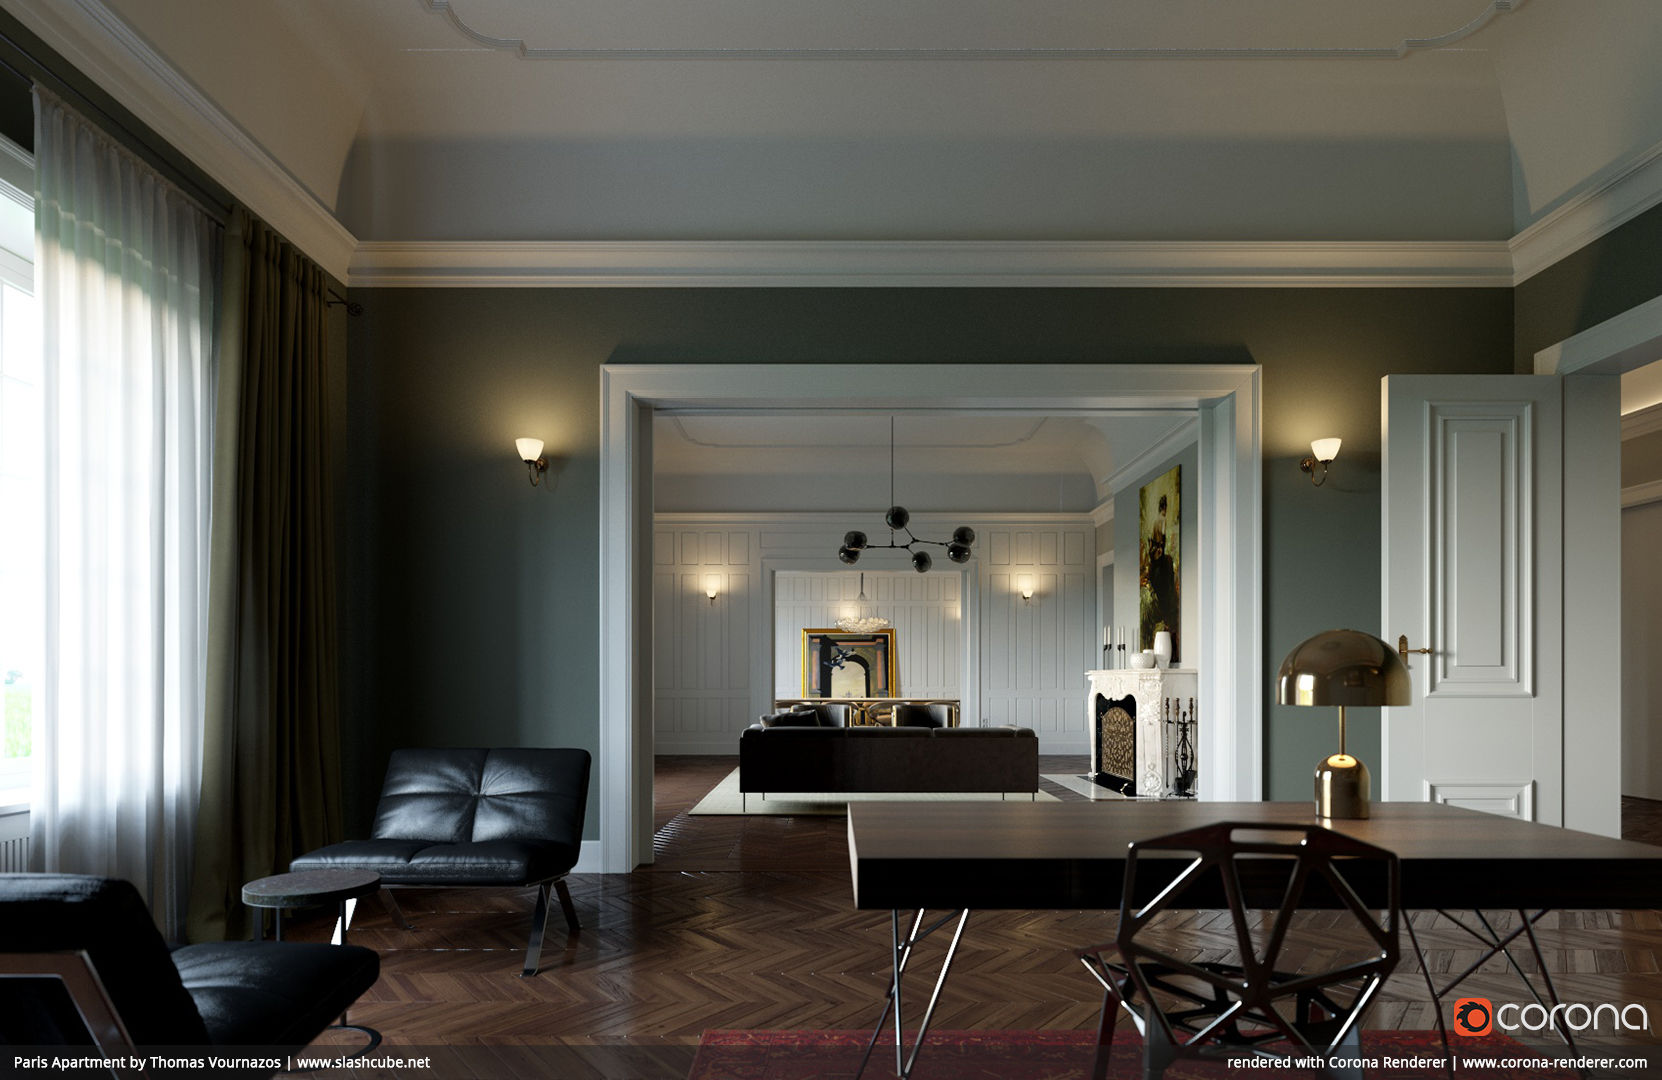 Paris Apartment 02 by Thomas Vournazos